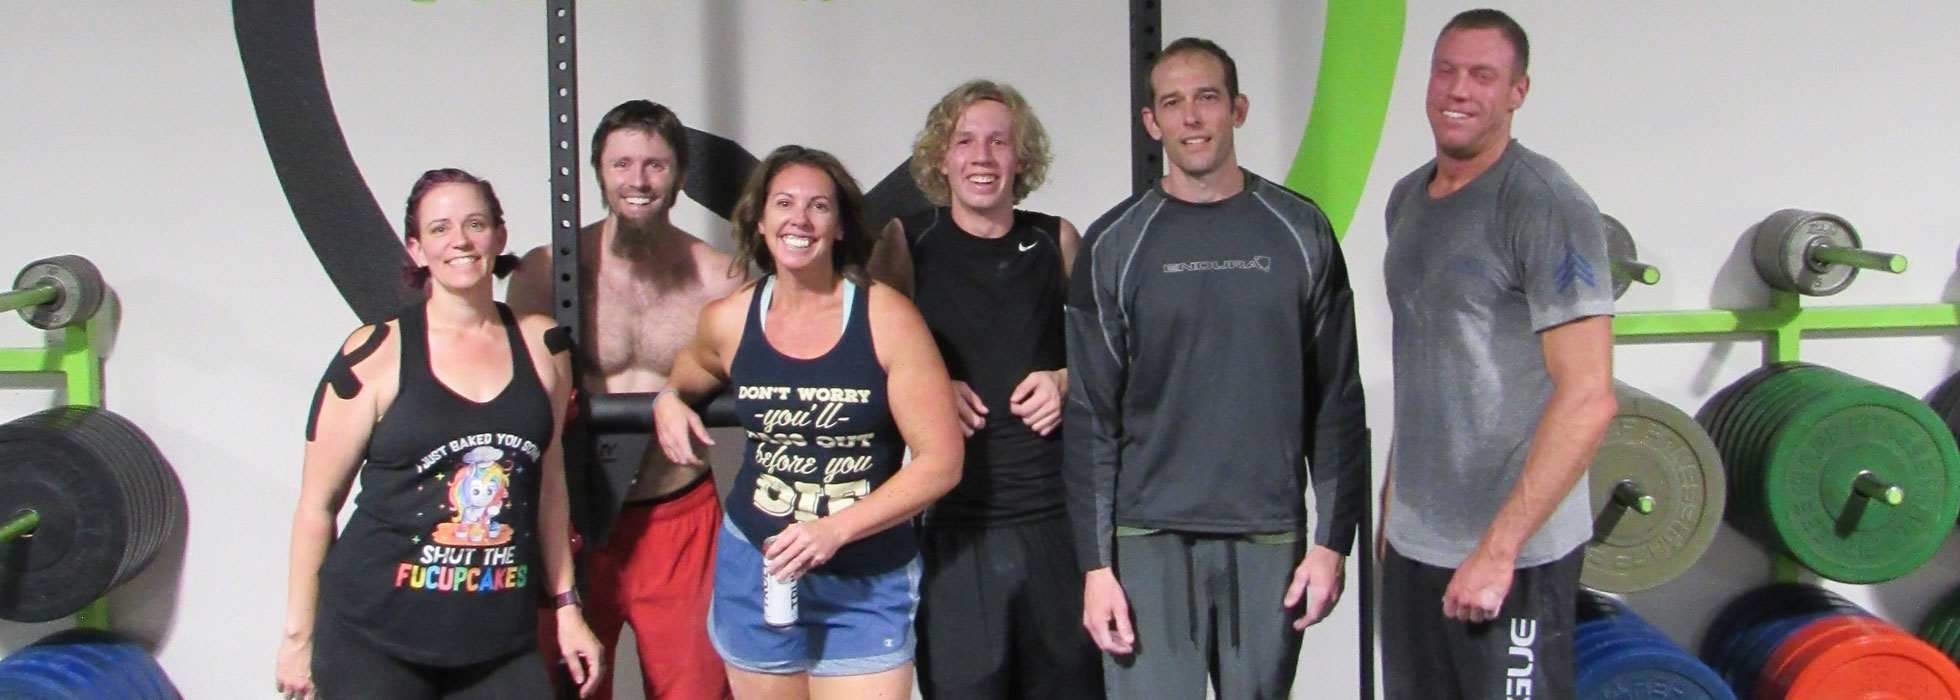 Top 5 Best Gyms To Join Near Littleton